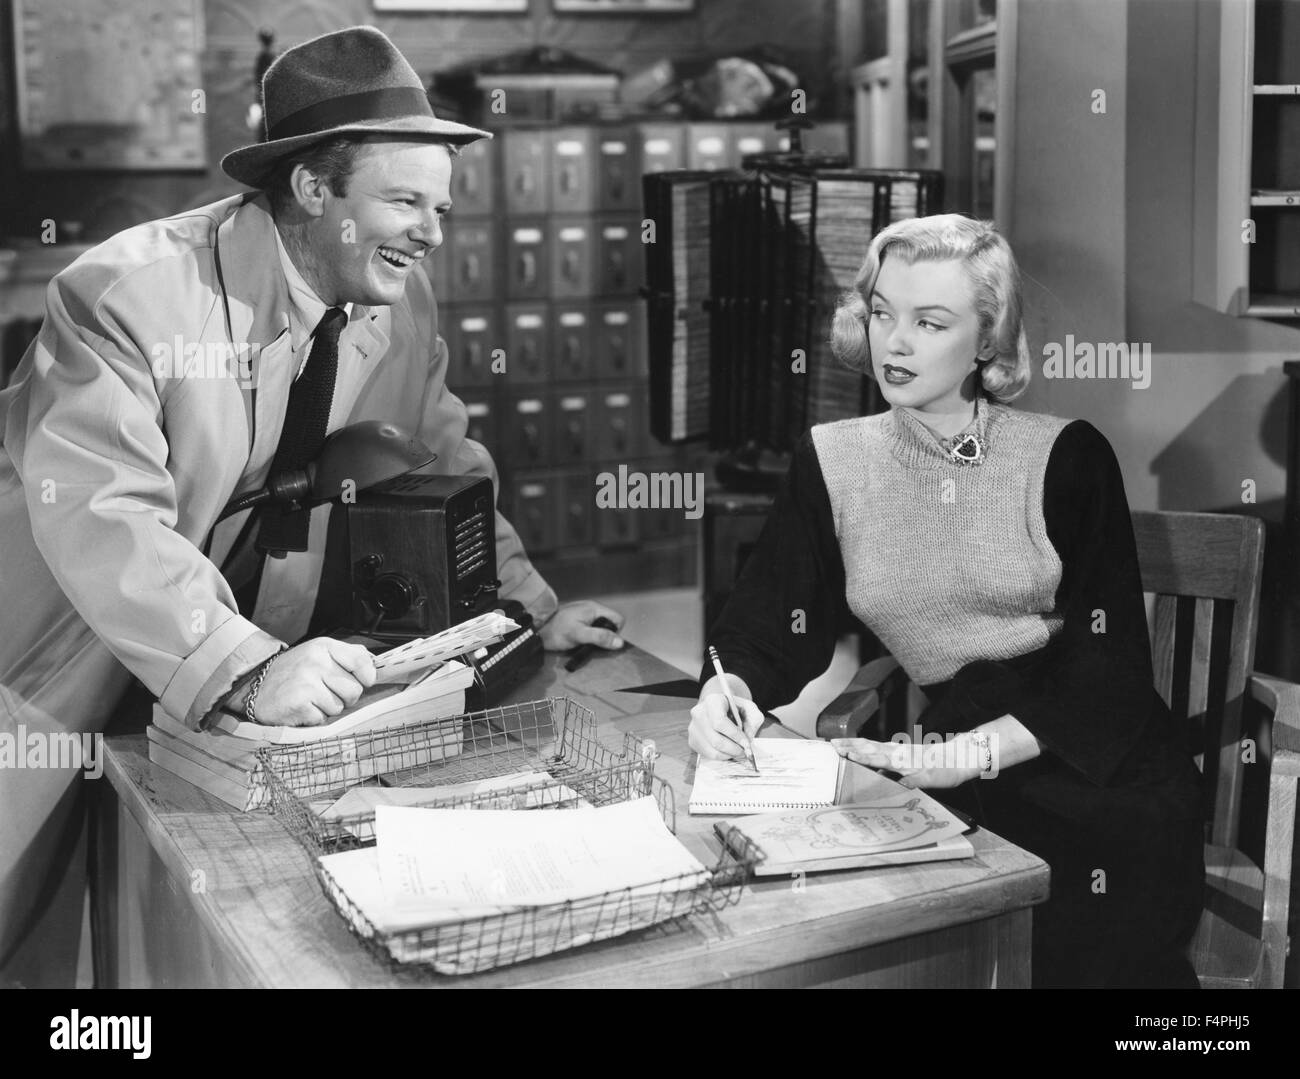 Alan Hale Jr. and Marilyn Monroe / Home Town Story / 1951 directed by Arthur Pierson [Metro-Goldwyn-Mayer Pictures] - Stock Image